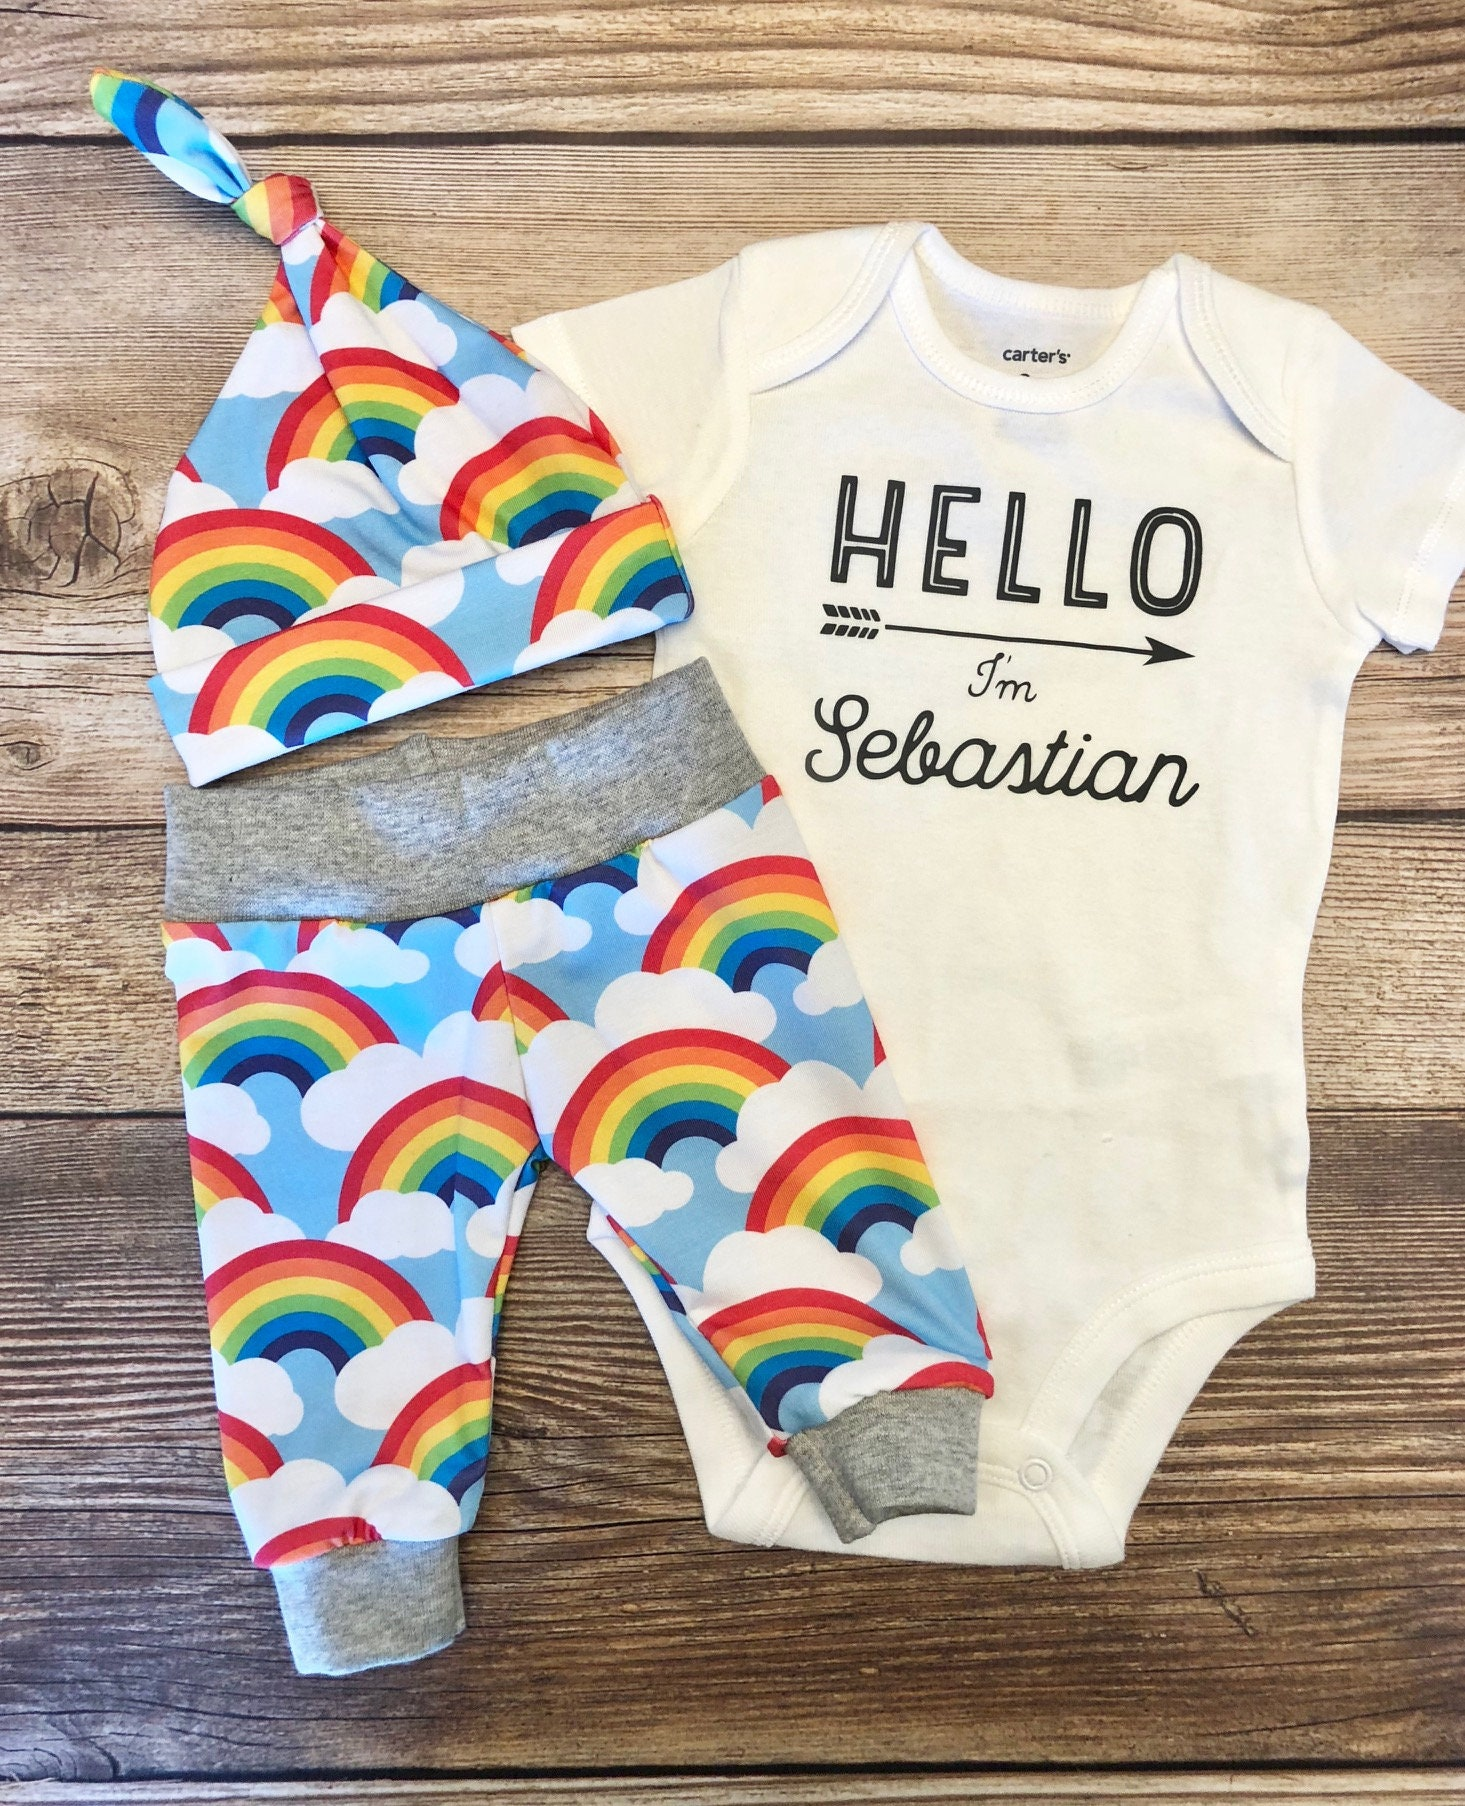 Rainbow Baby Name Outfit Rainbow Baby Gift Rainbow Baby | Etsy